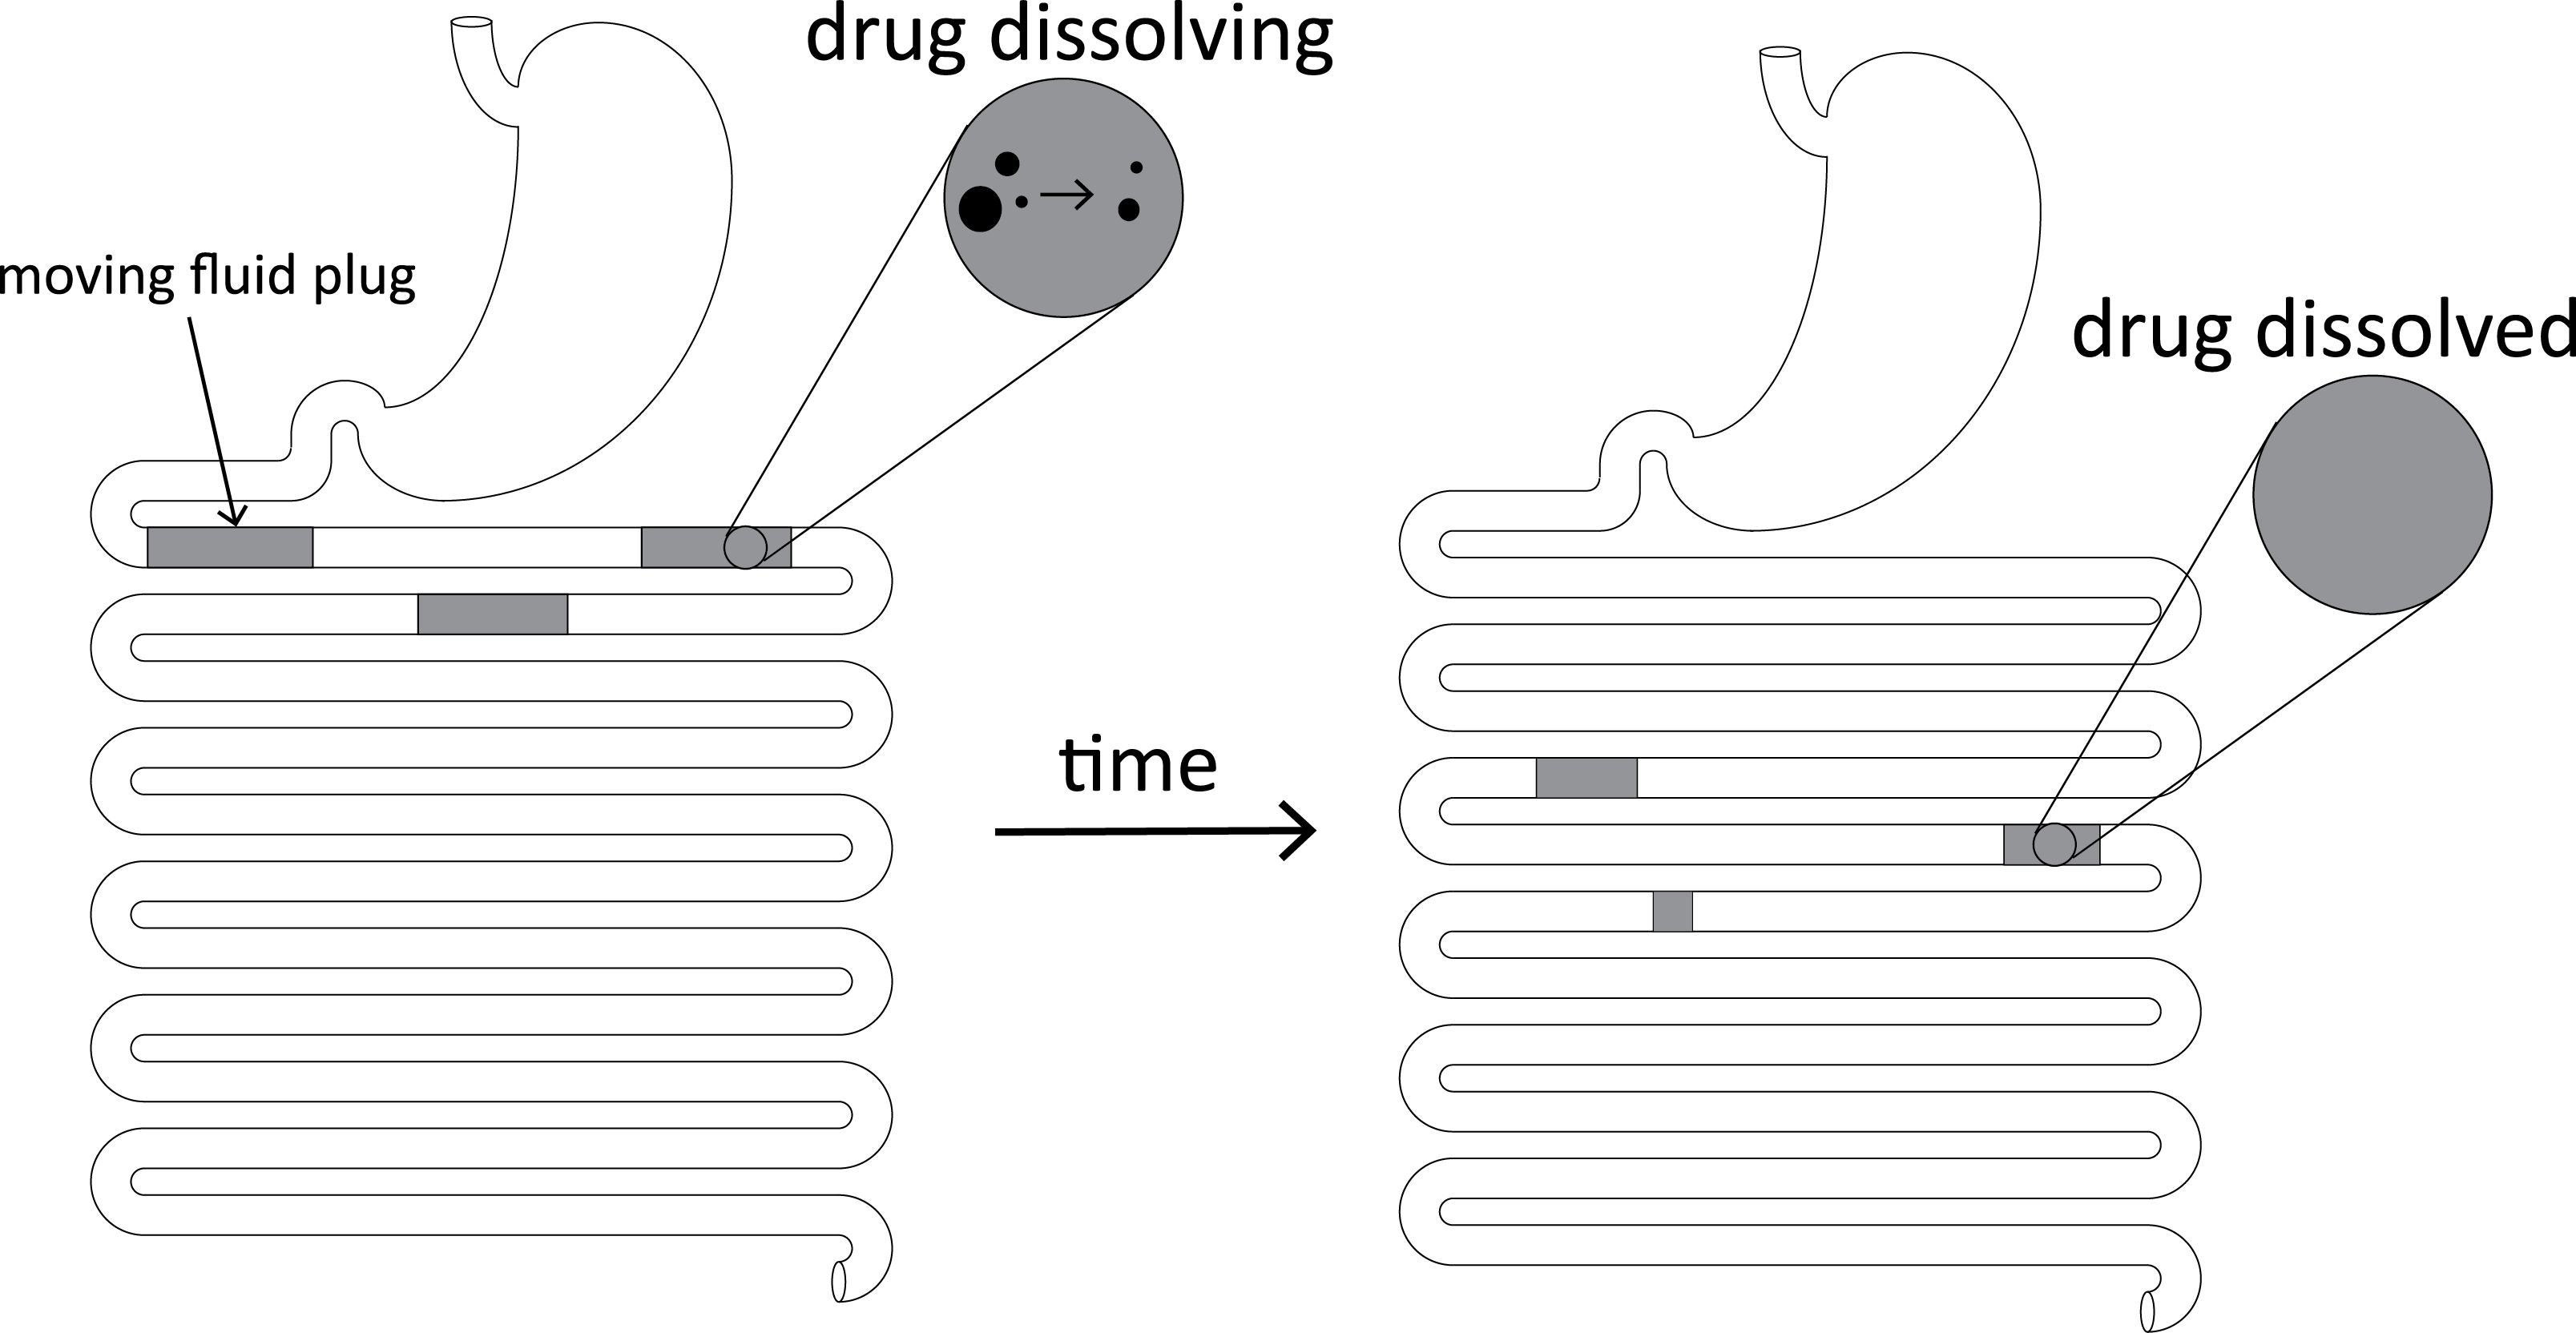 Mechanistic modeling of gastrointestinal motility with integrated dissolution for simulating drug absorption